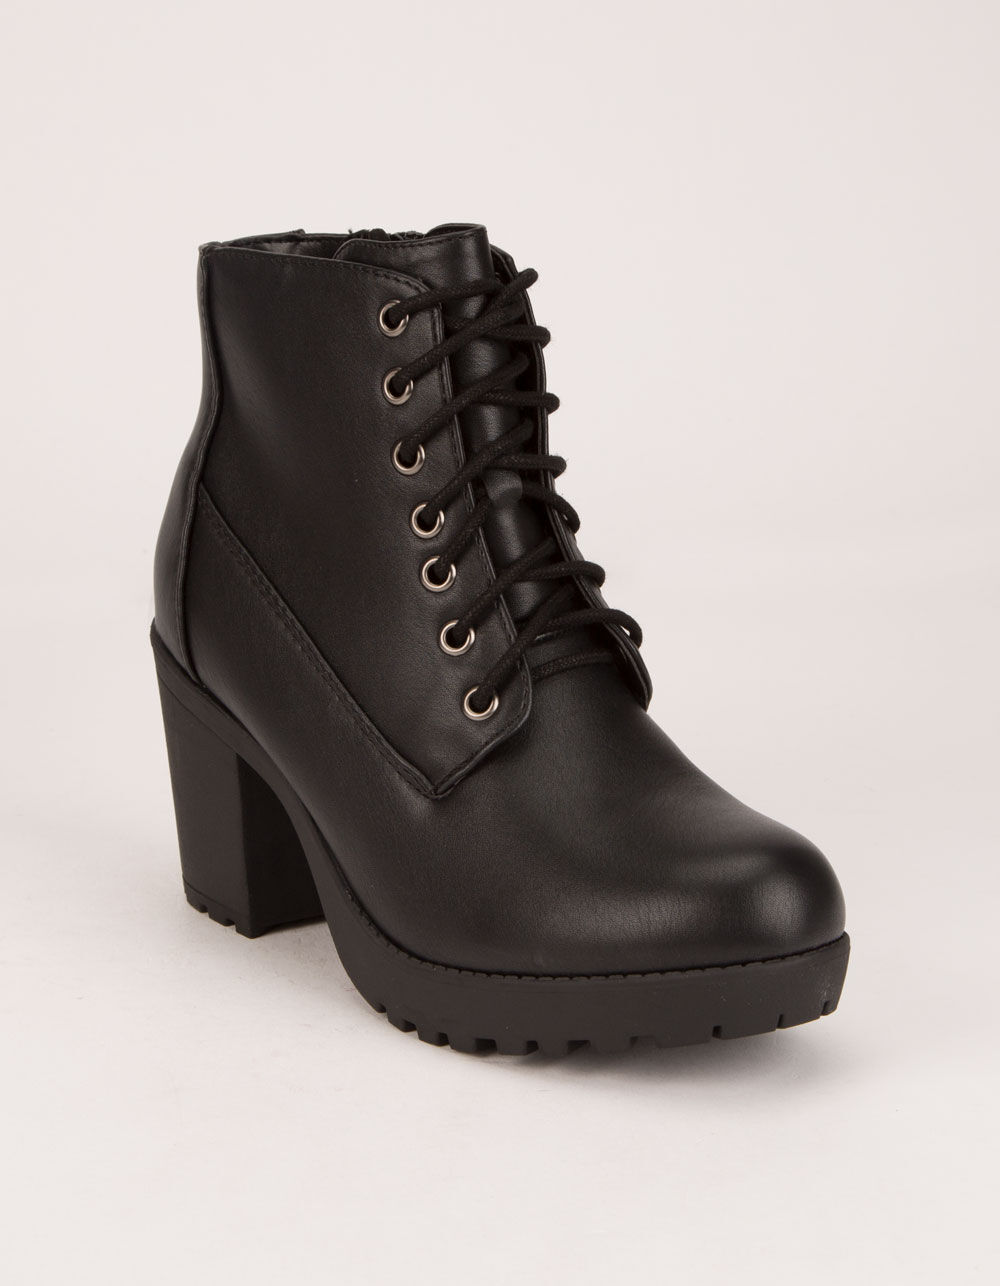 SODA Lug Sole Lace Up Booties